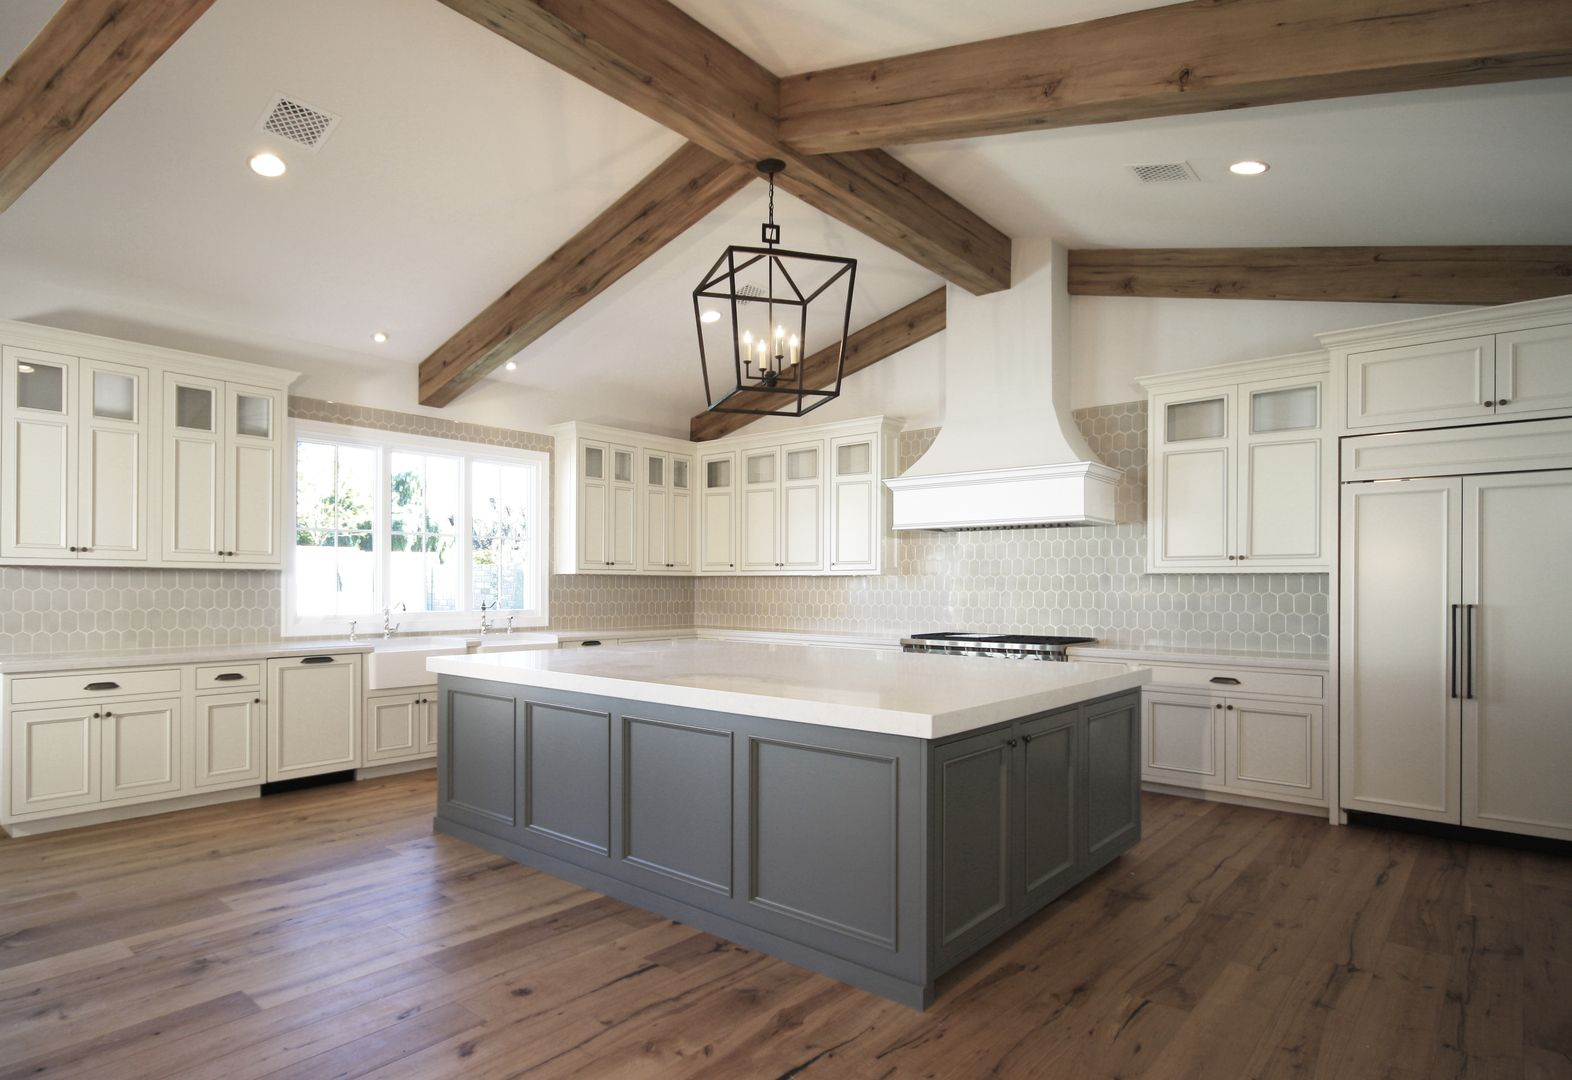 Exeter Remodel Farmhouse Kitchen Cabinets Grey Kitchen Island Modern Farmhouse Kitchens